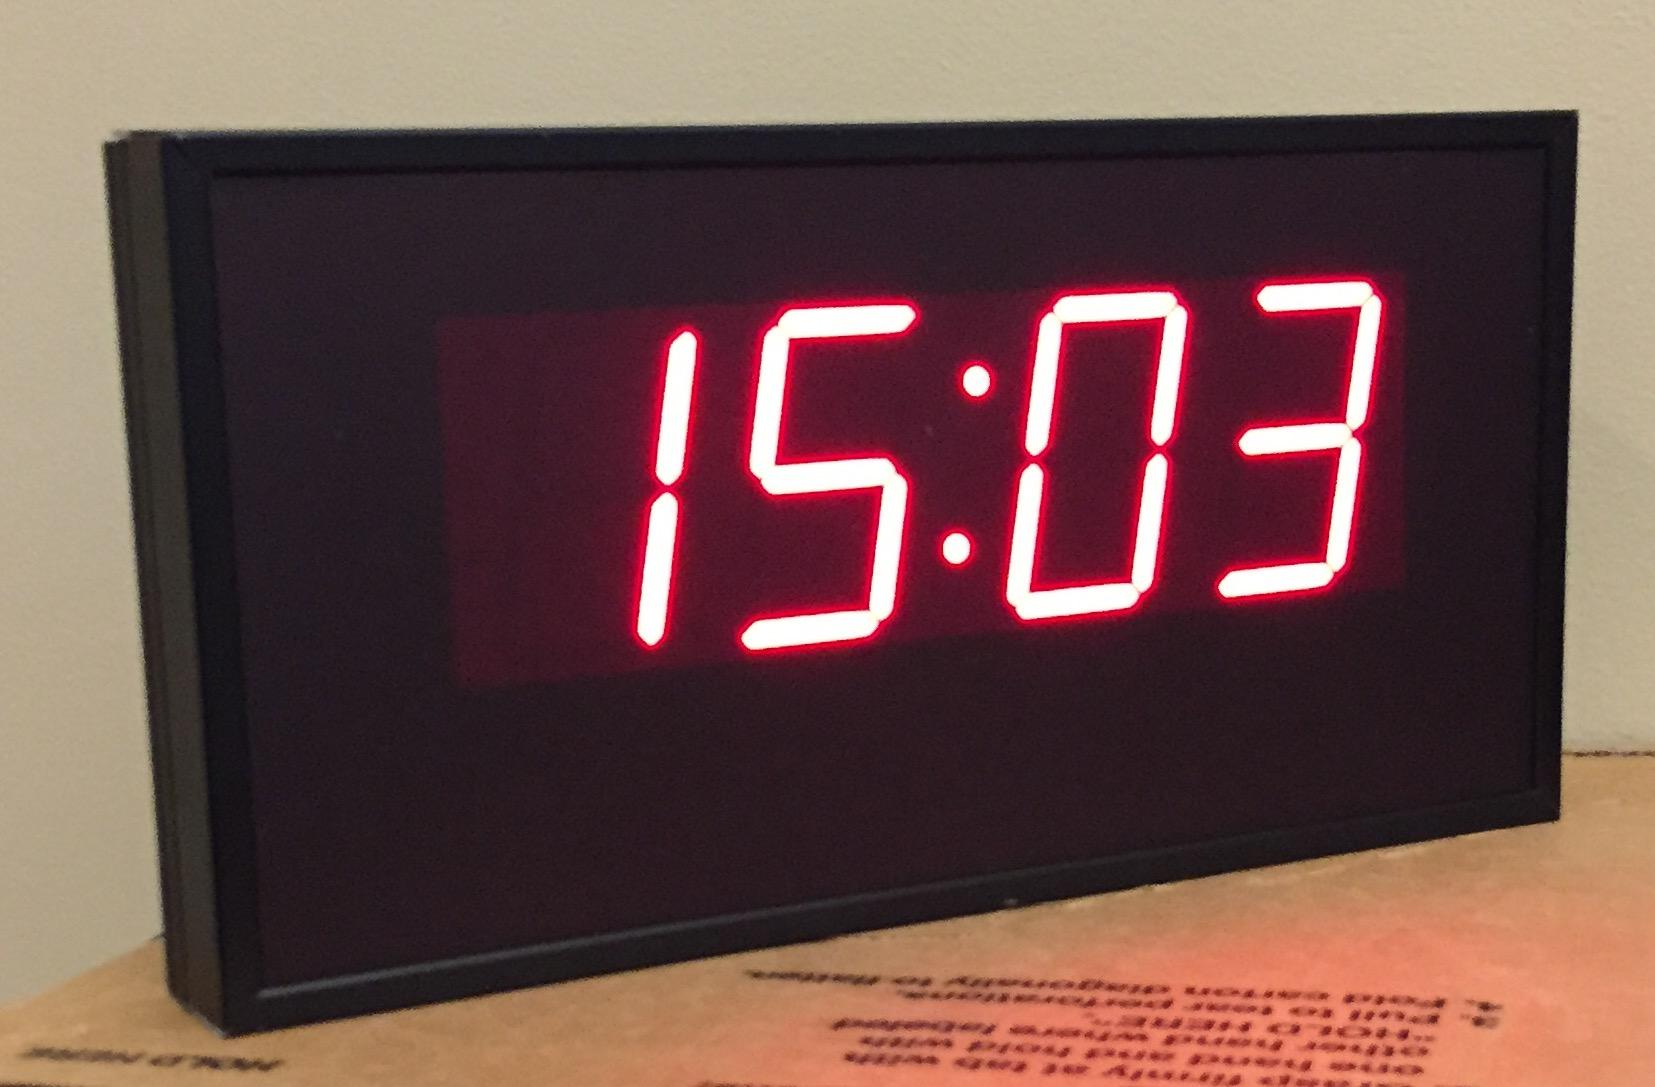 The electronic clock helps staff members and blood donors to keep track of the time. Every donor needs to stay in canteen for 15 minutes before leaving.